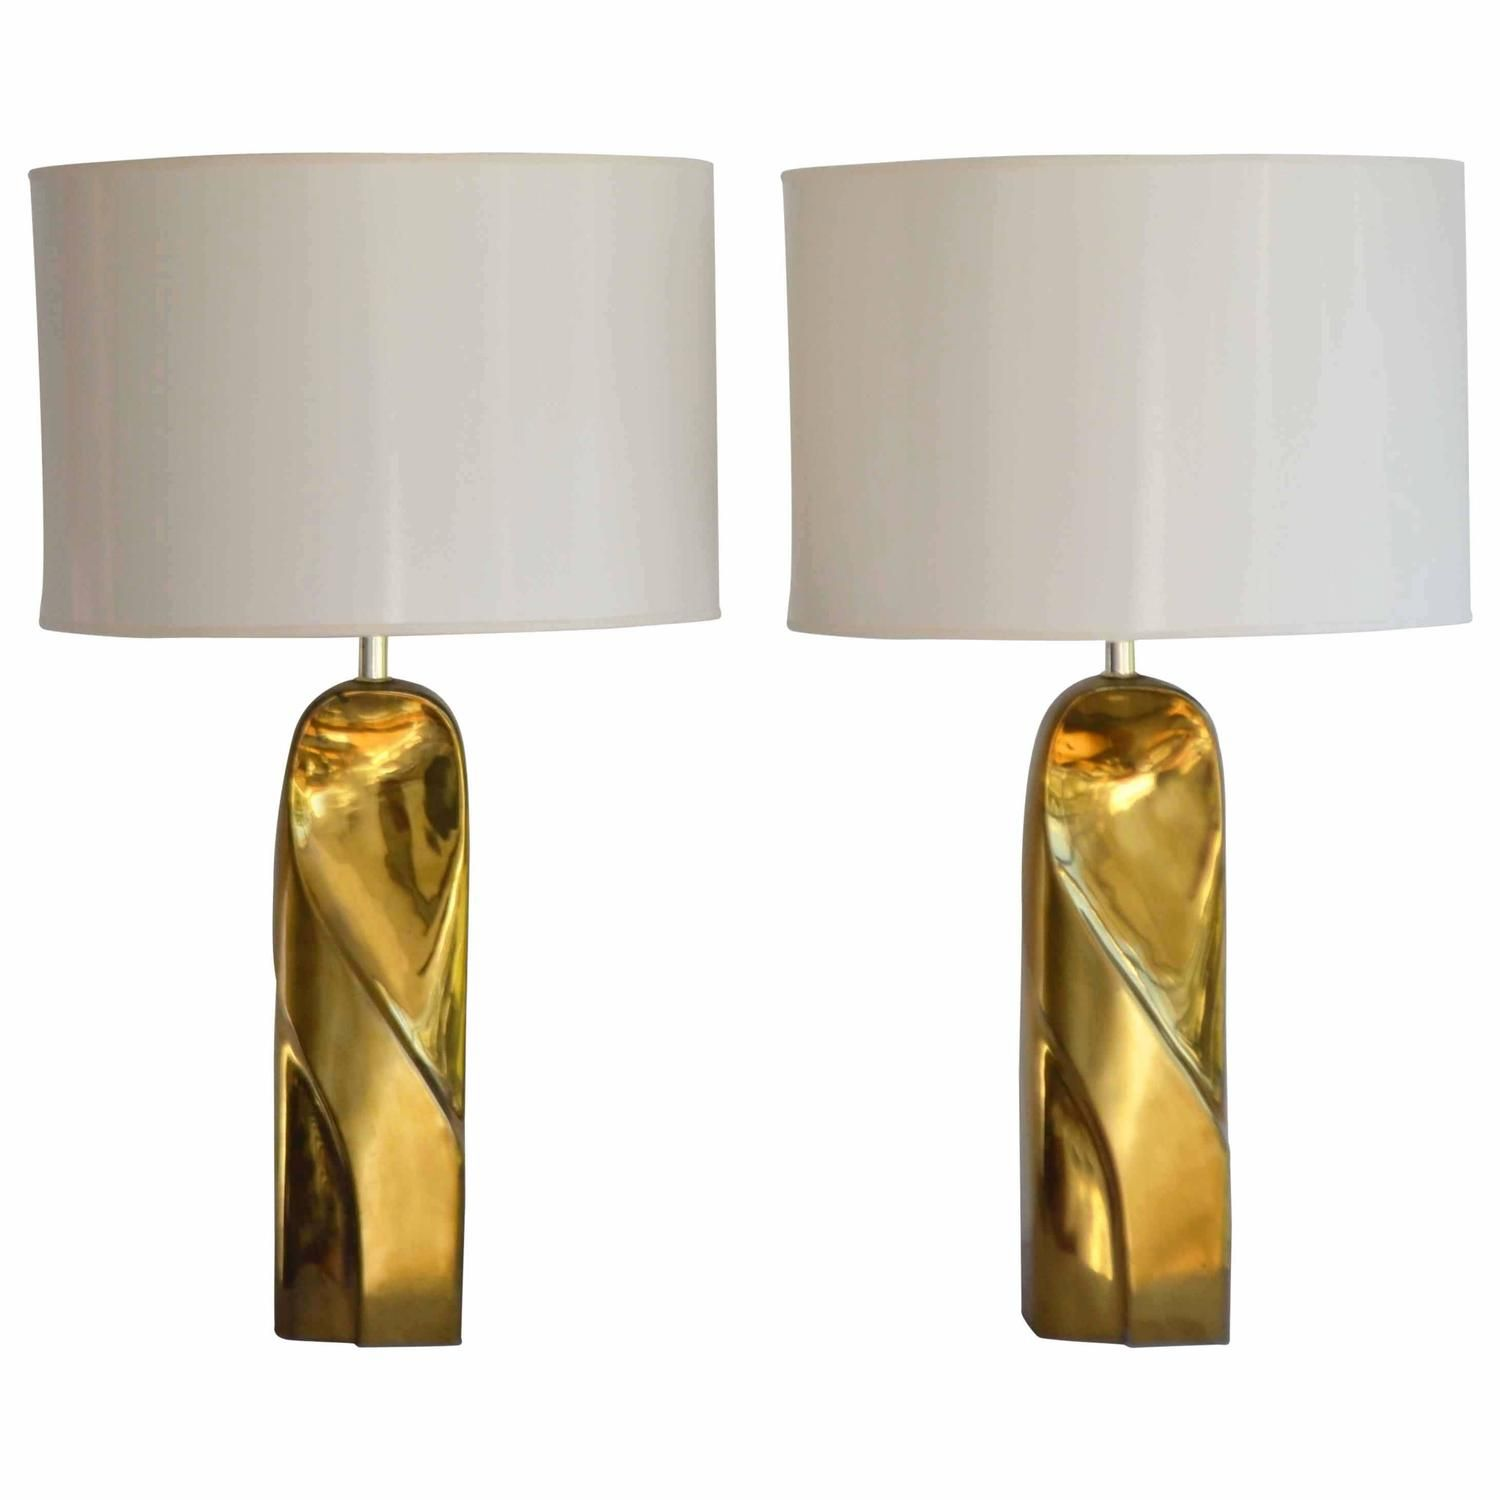 Pair of postmodern polished brass table lamps brass table lamps pair of postmodern polished brass table lamps mozeypictures Images